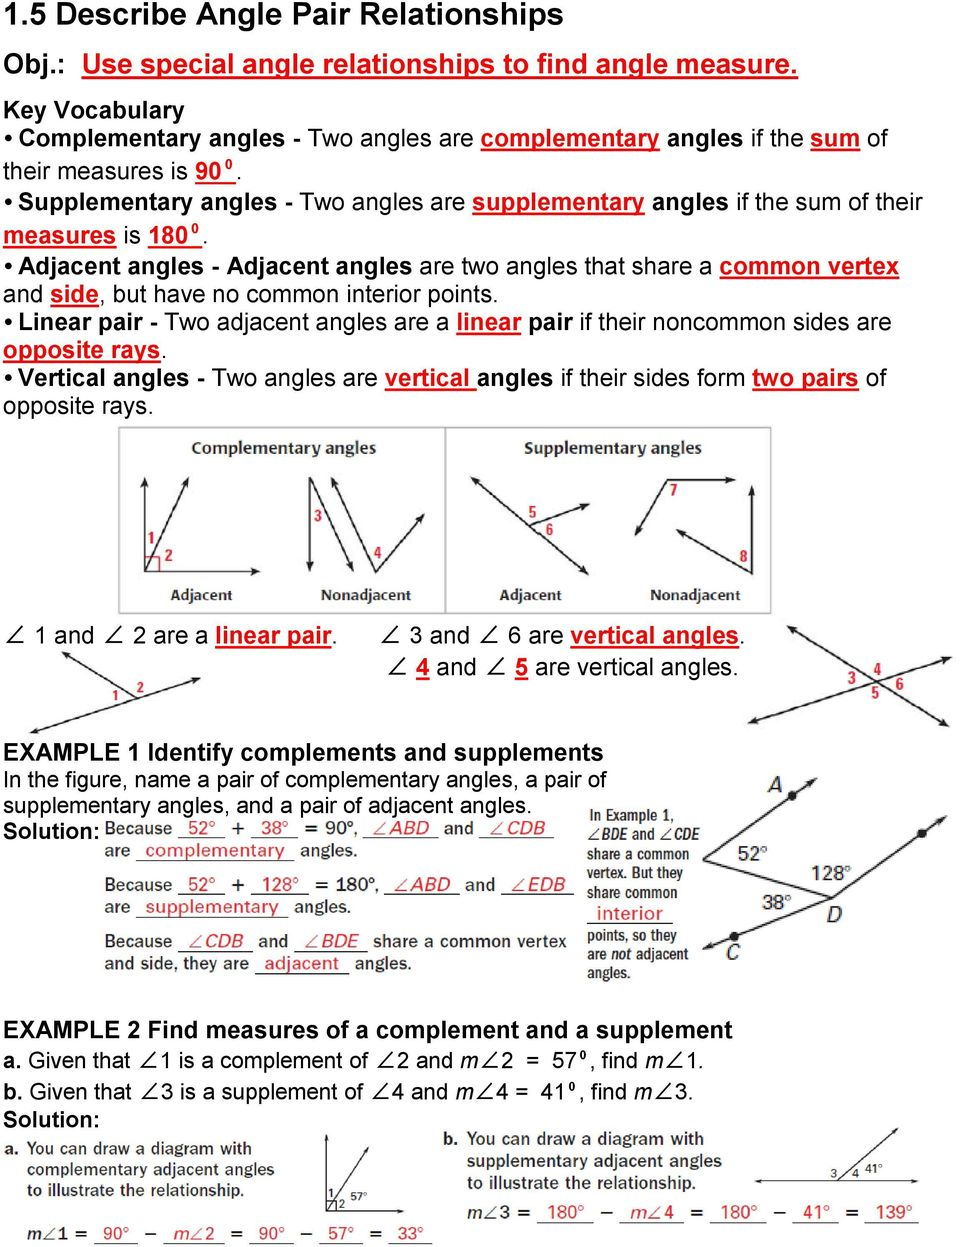 Supplementary angles - Two angles are supplementary angles if the sum of their measures is 180⁰.